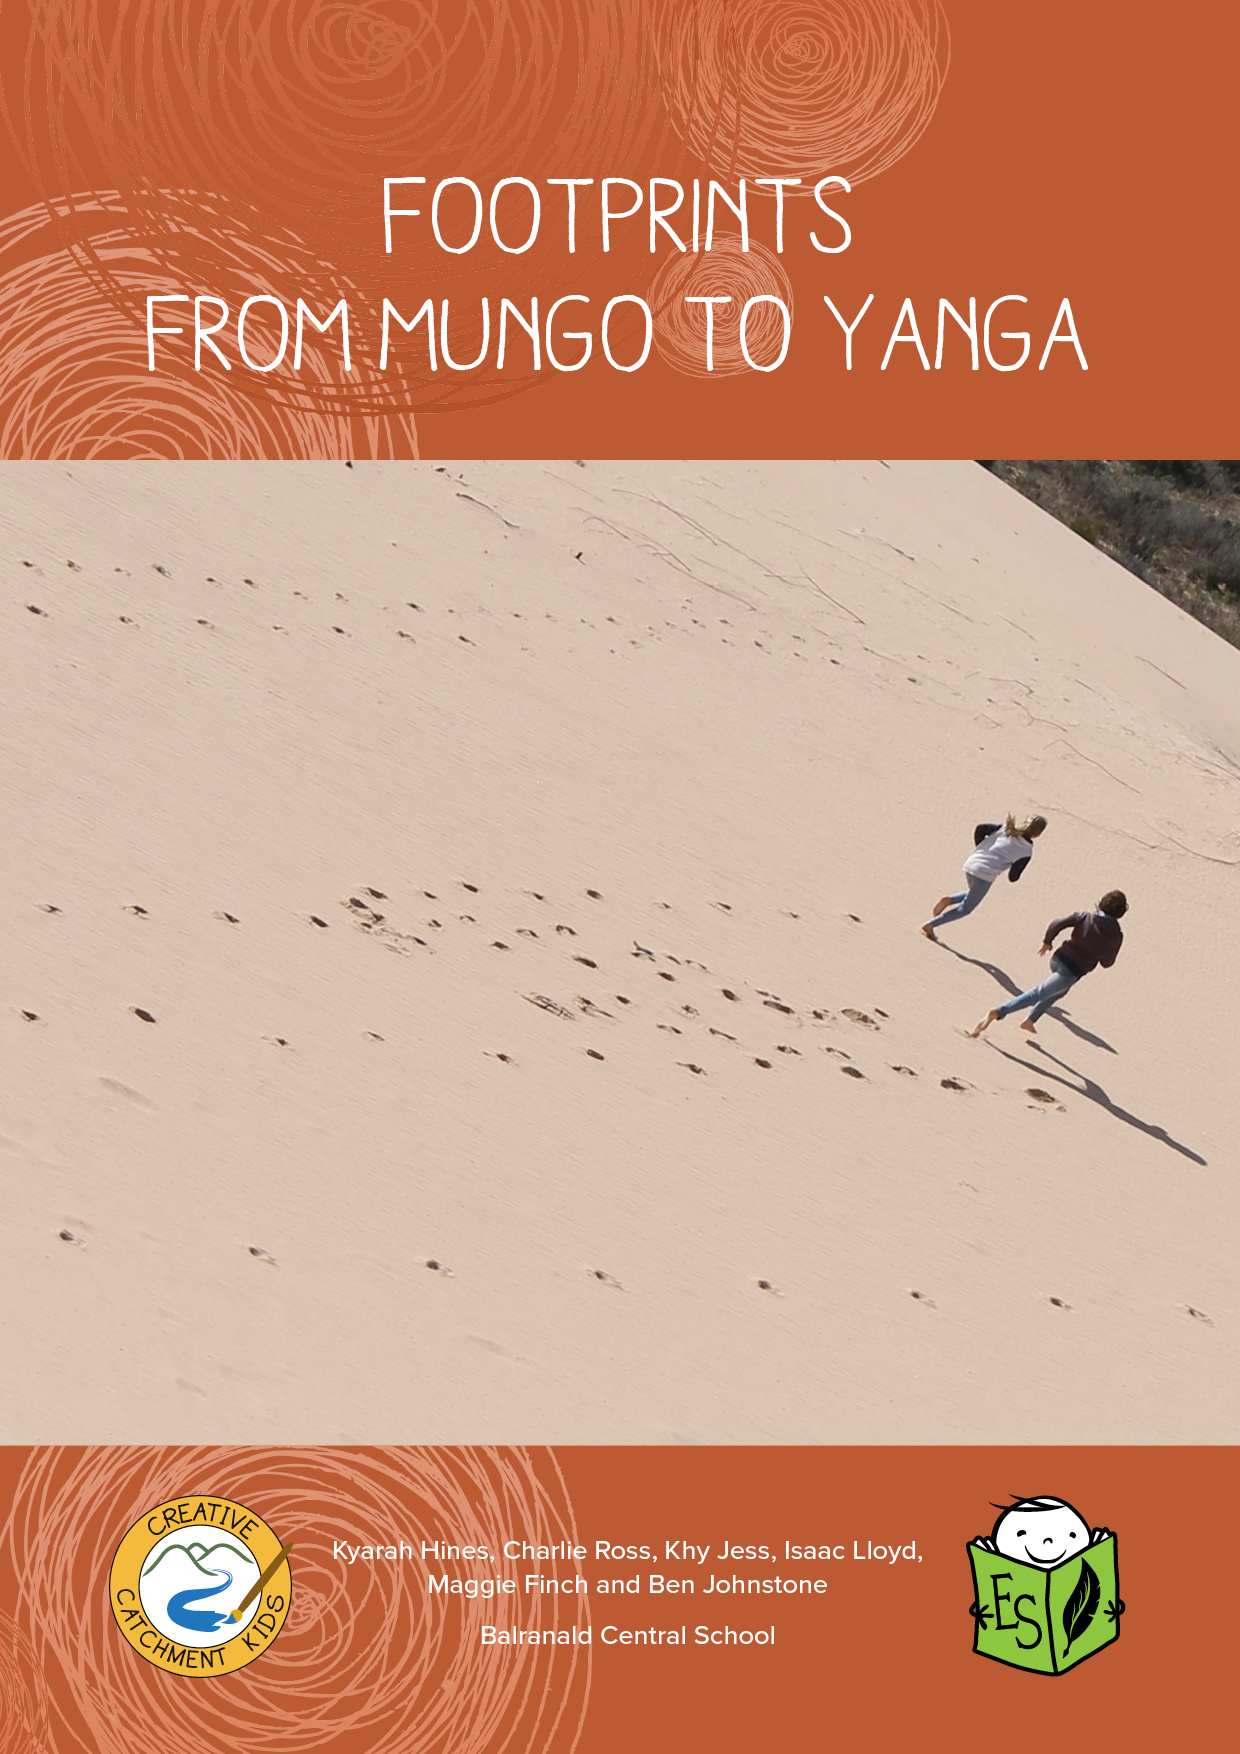 Footprints from Mungo to Yanga